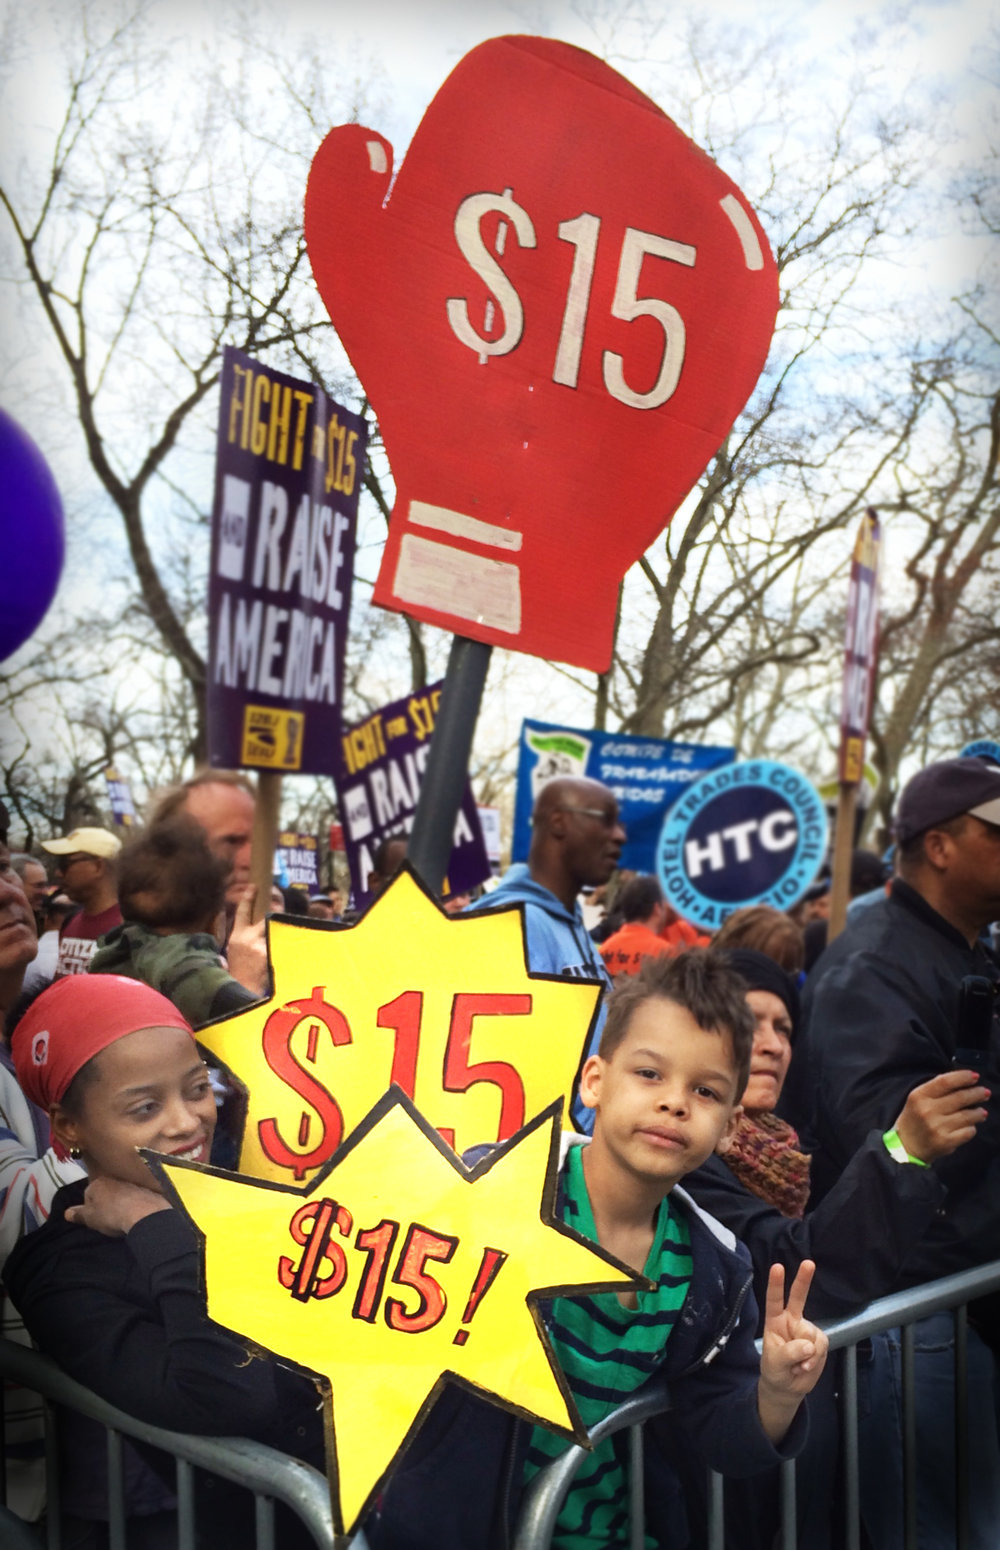 #FightFor15 Mass March and Rally